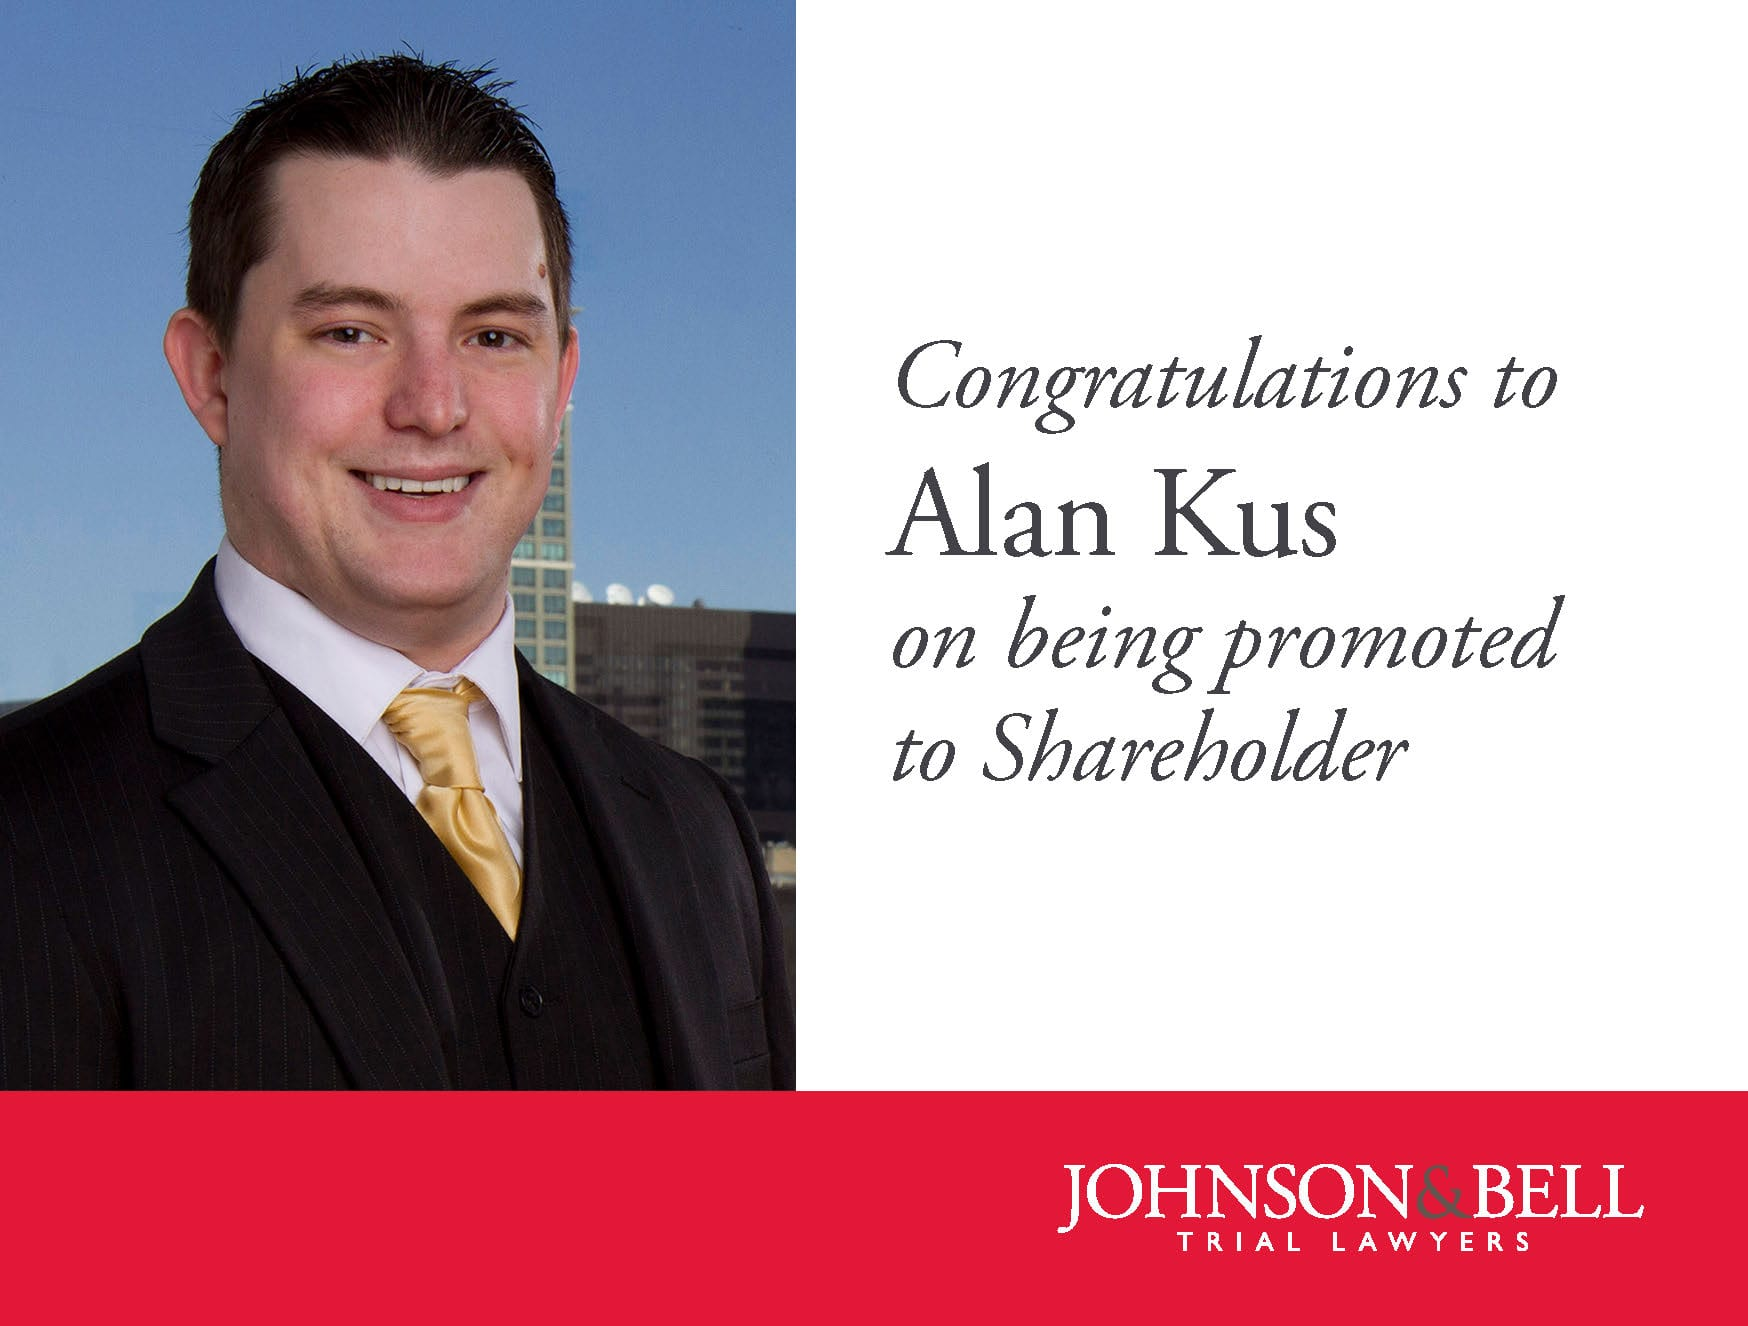 Alan Kus - Shareholder Promotion